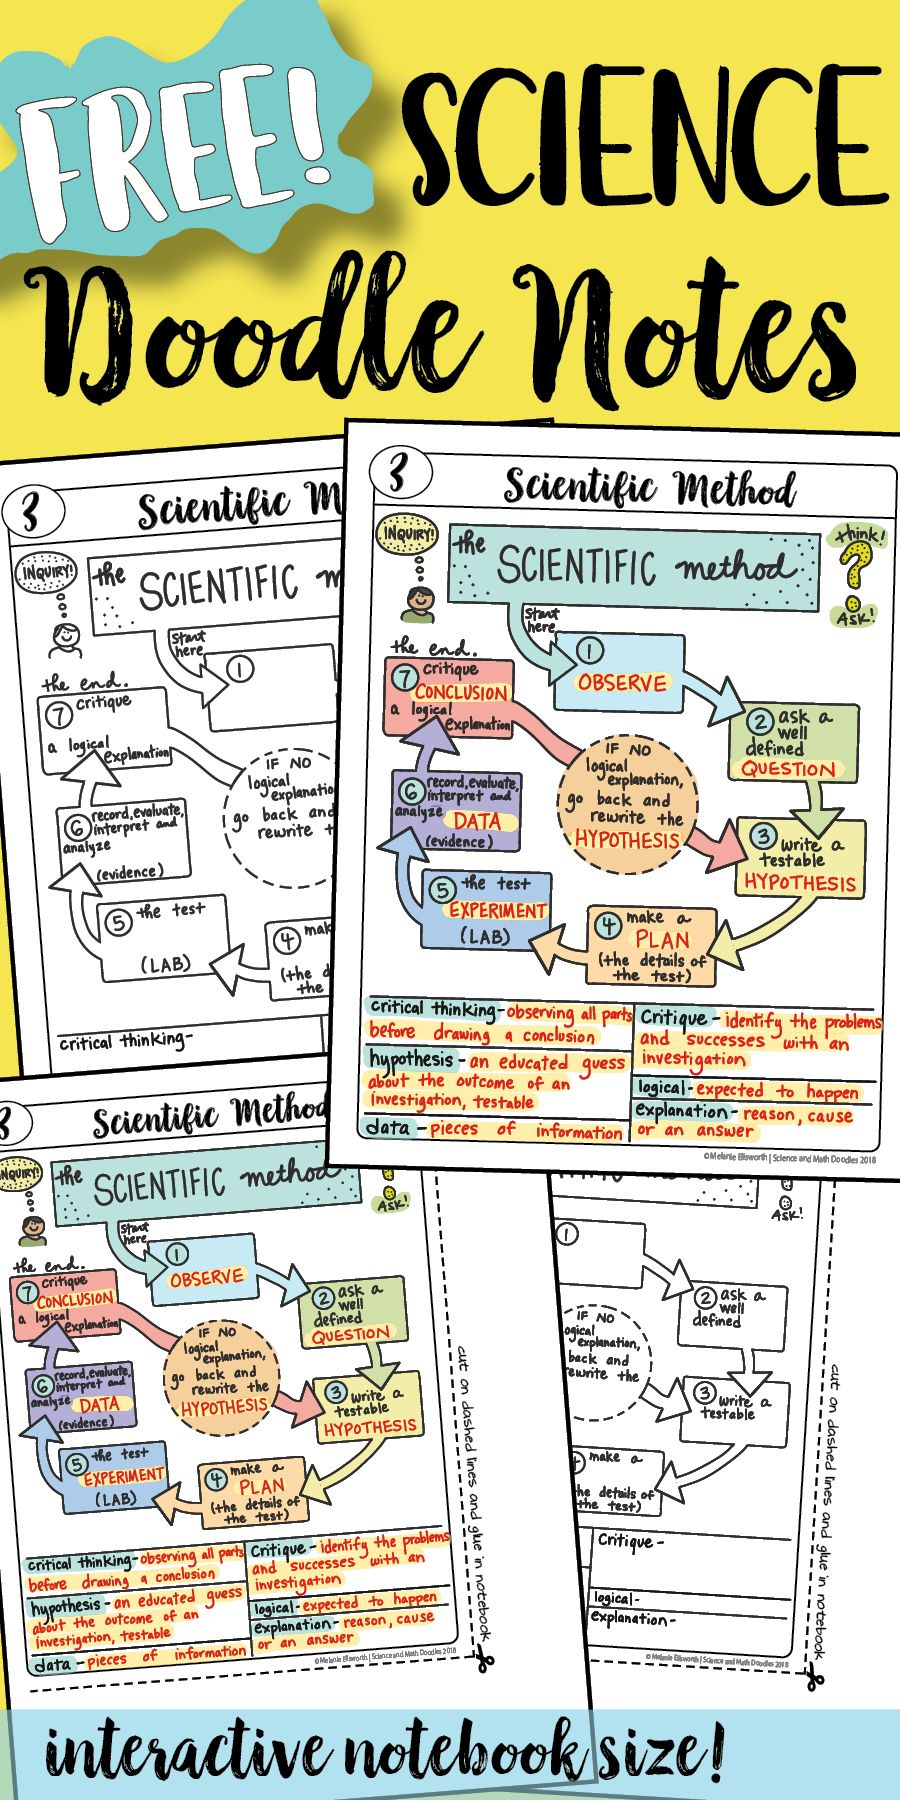 Free Free Free Science Doodle Notes So Easy To Use Just Play The Powerpoint For The Key Love These Science Doodles Science Notes Science Notebooks